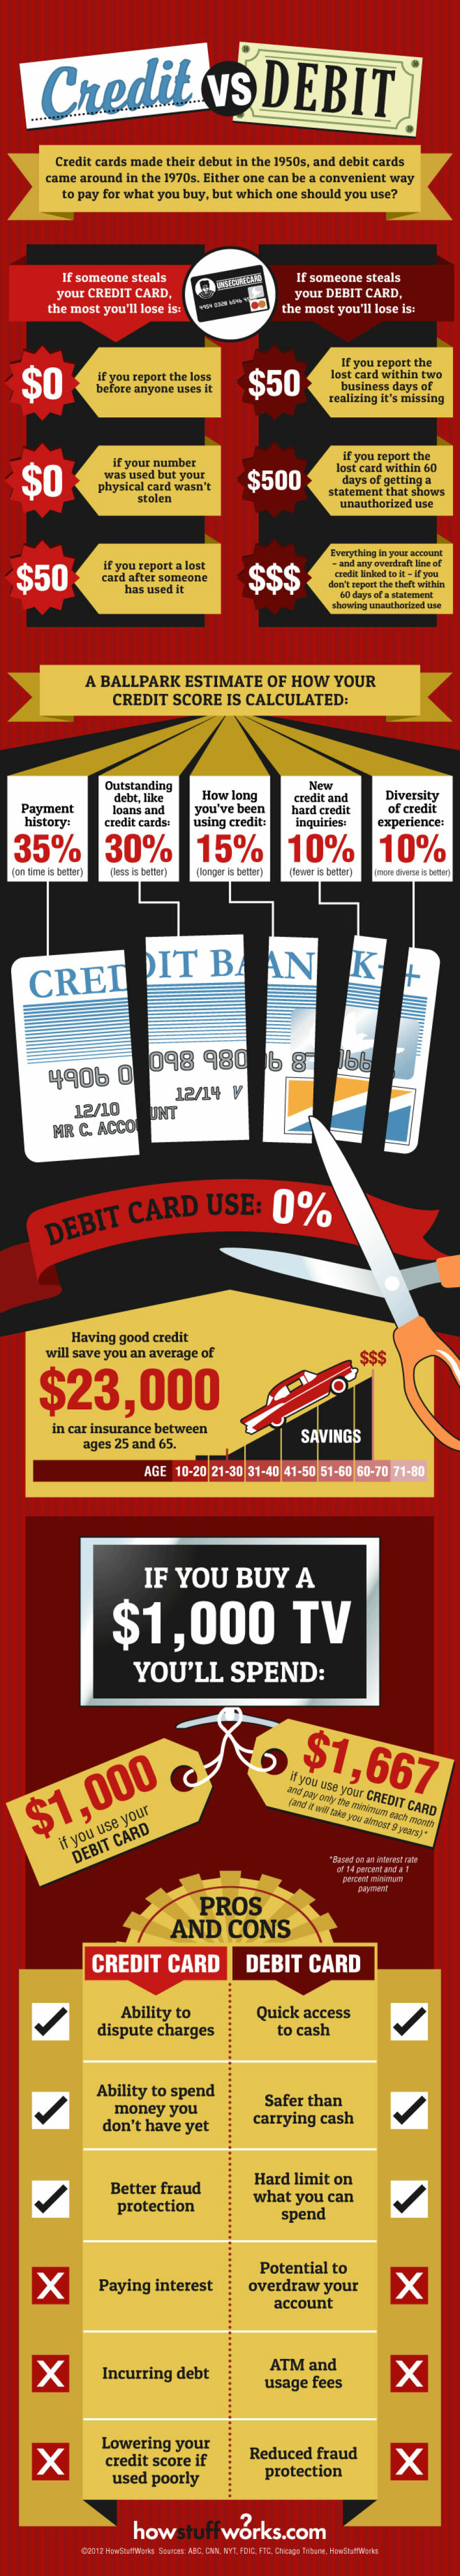 graphic showing credit versus debit cards